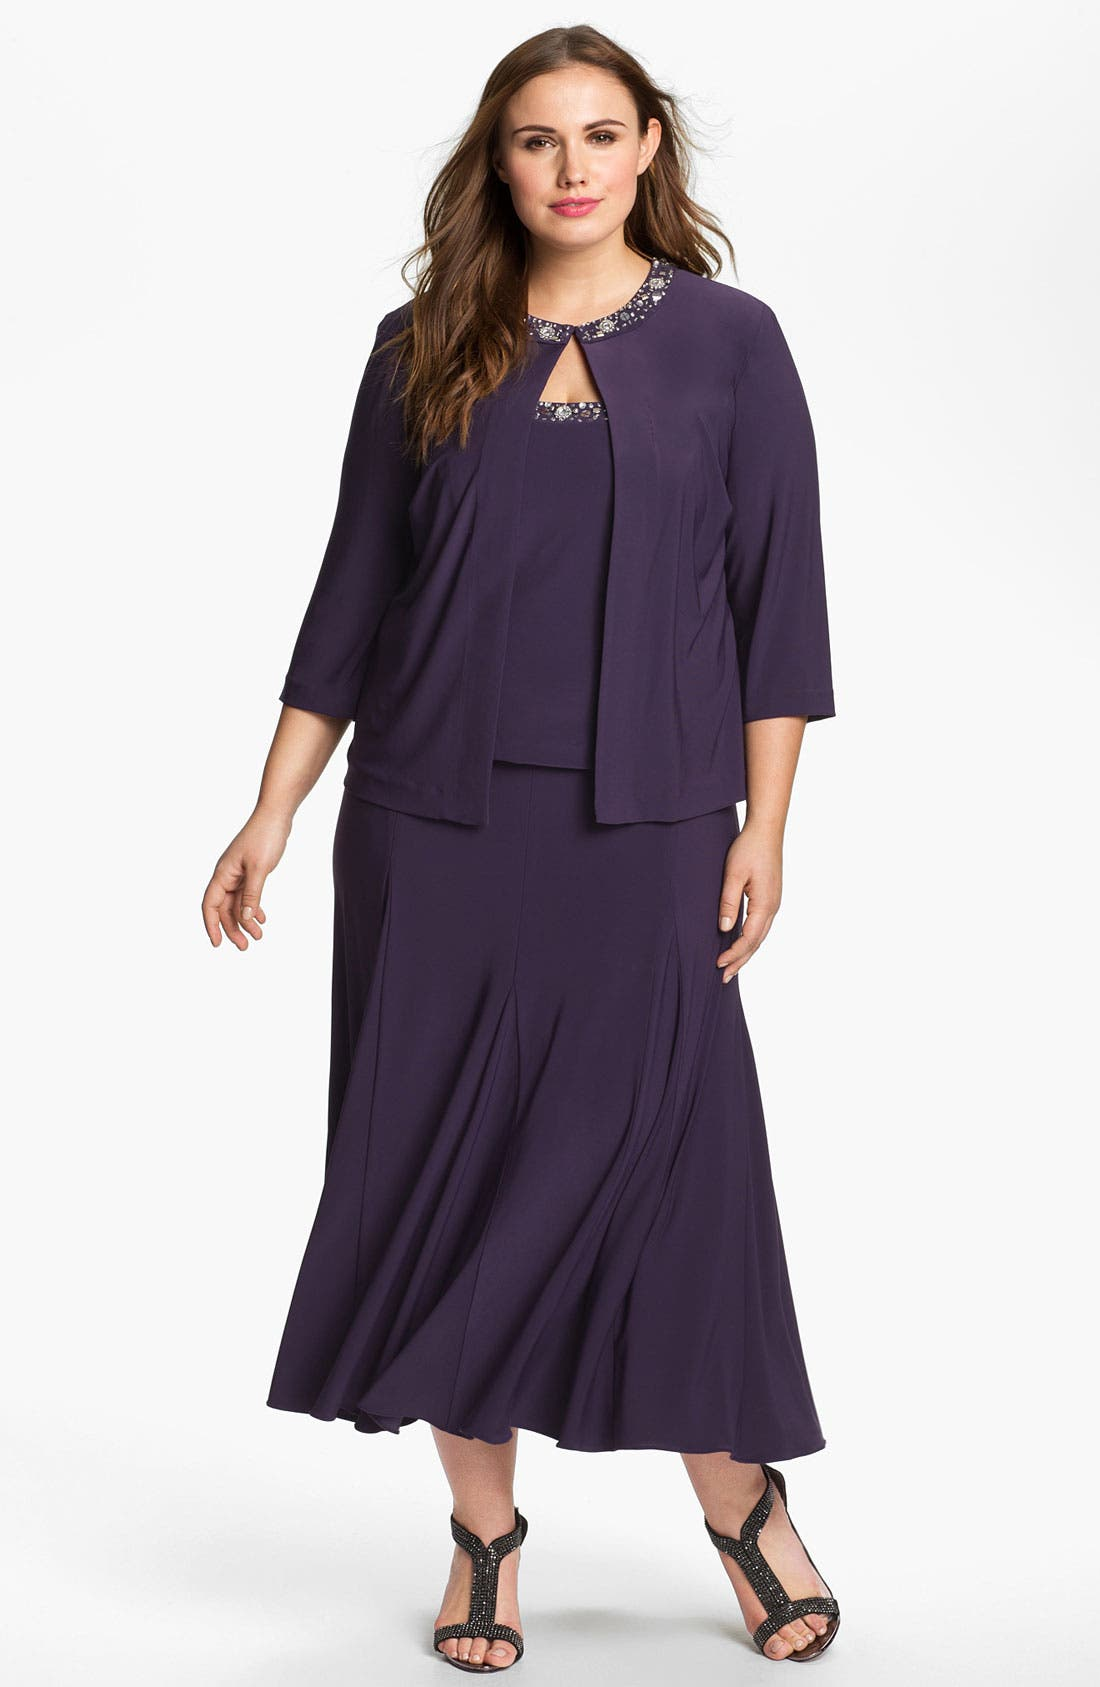 Main Image - Alex Evenings Beaded Dress & Jacket (Plus Size)